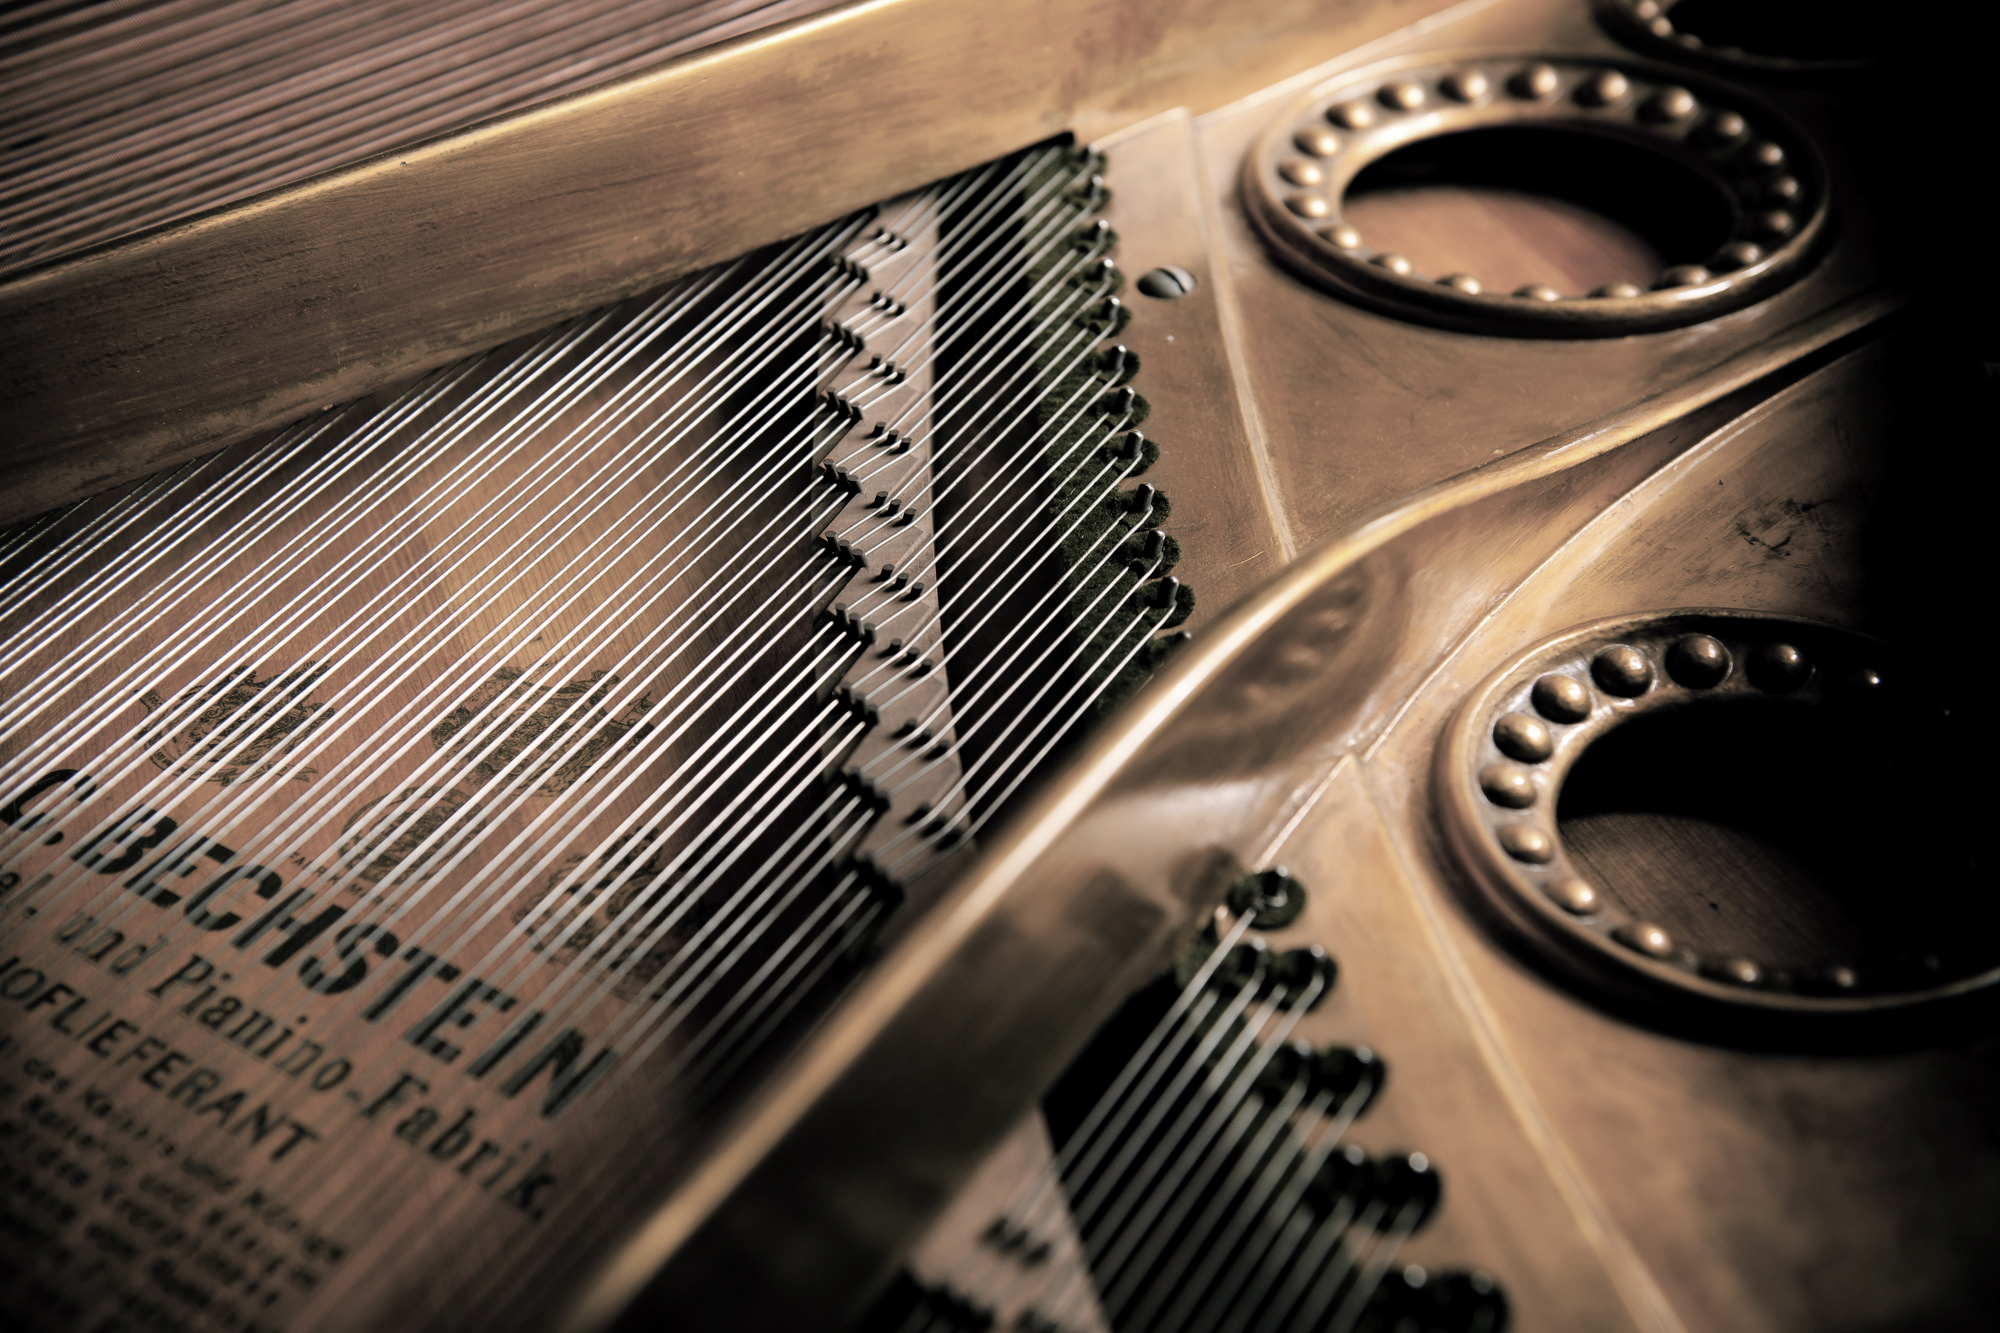 A shot of the inside of a grand piano, showing strings and sound board